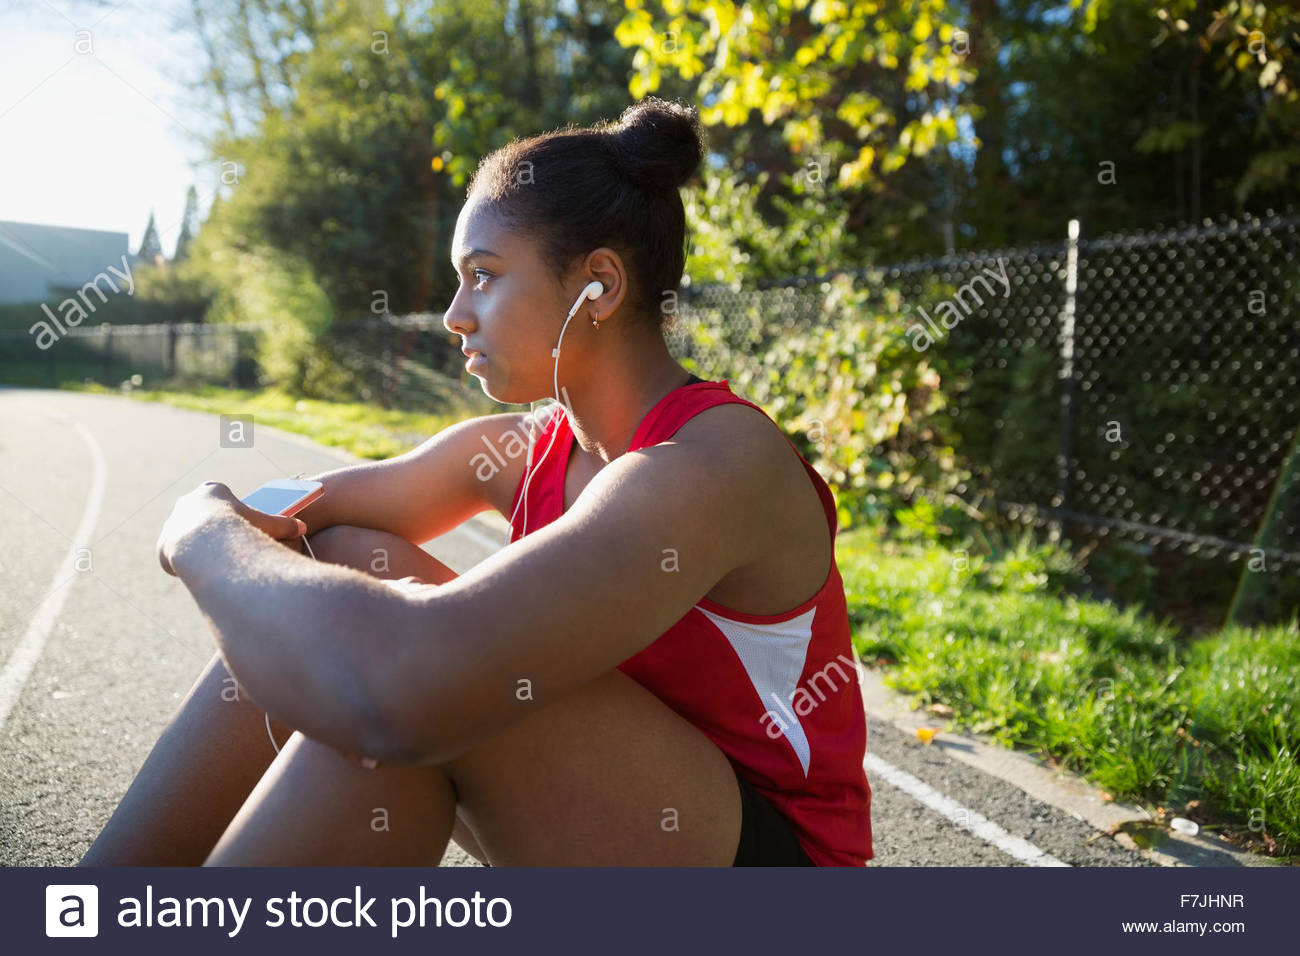 Serious high school athlete listening music running track - Stock Image